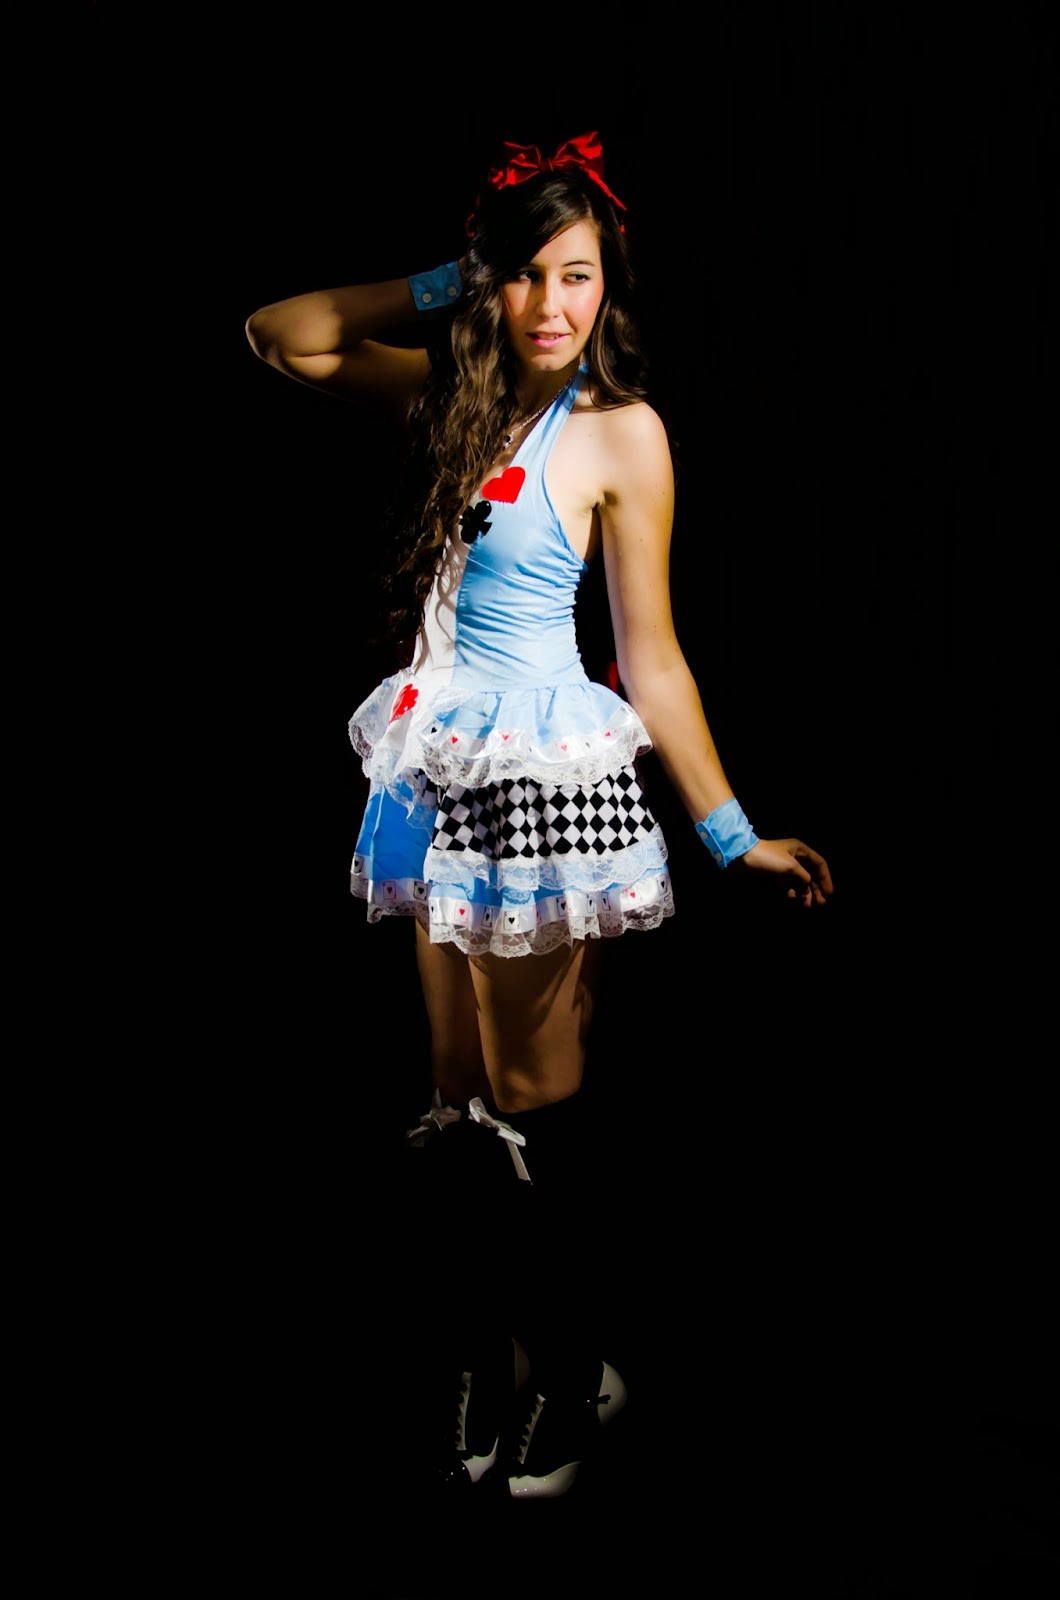 halloween, halloween costume, alice in wonderland costume, lost in wonderland, alice in wonderland, sexy, sexy outfit, risque, love halloween, sexy halloween costumes, amiclubwear, ami clubwear, ami clubwear halloween costumes, hot costume, queen of hearts costume,